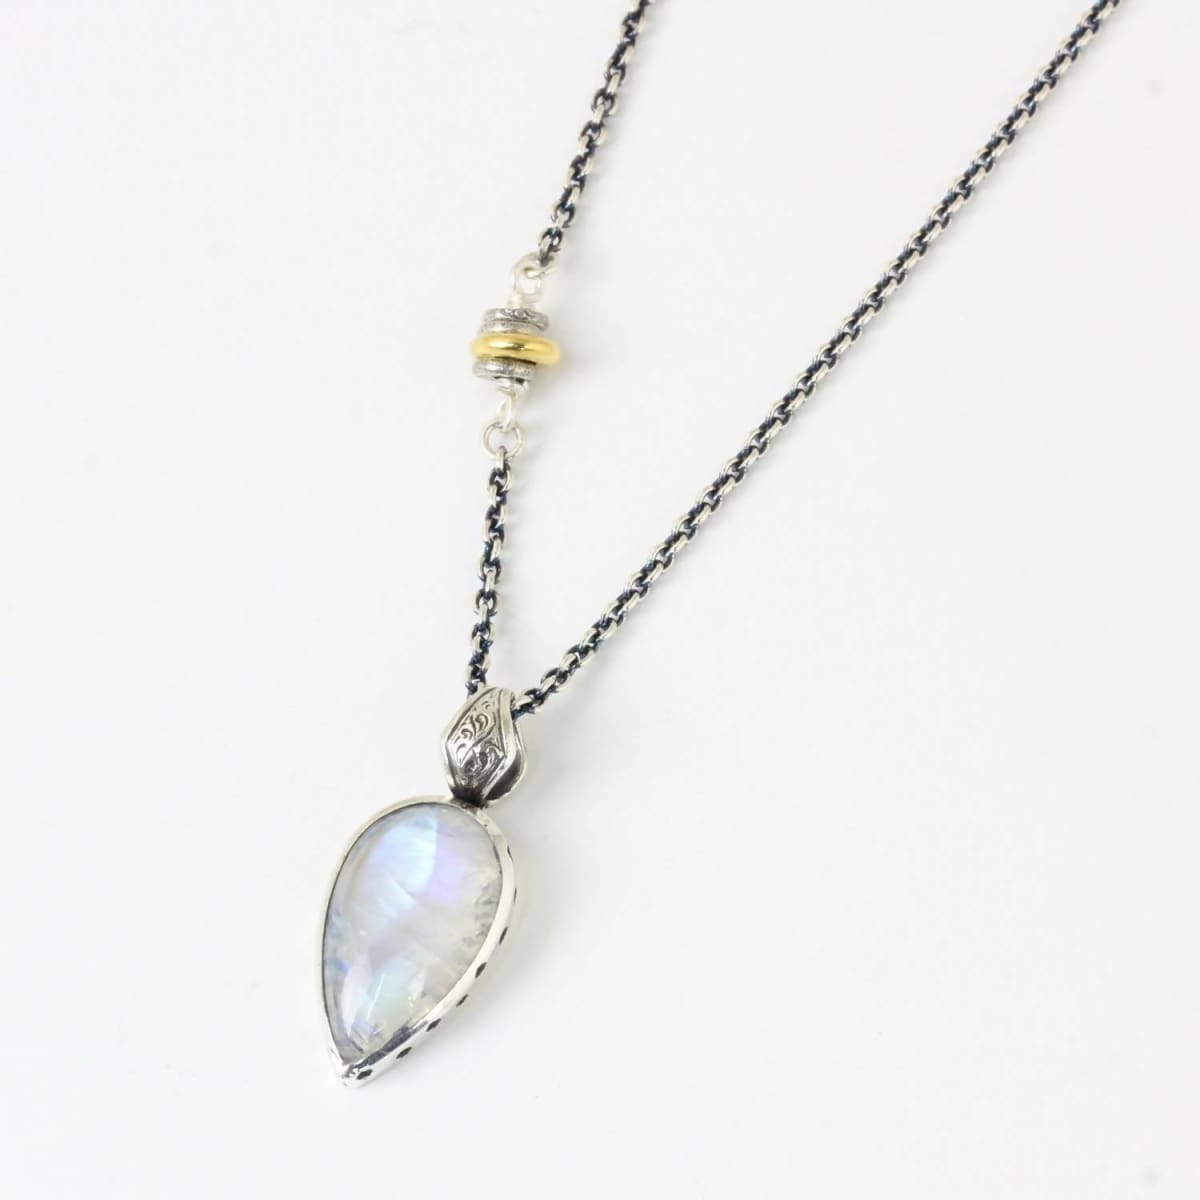 Necklaces Bezel set moonstone gemstone with hand engraved detailing and oxidized silver chain